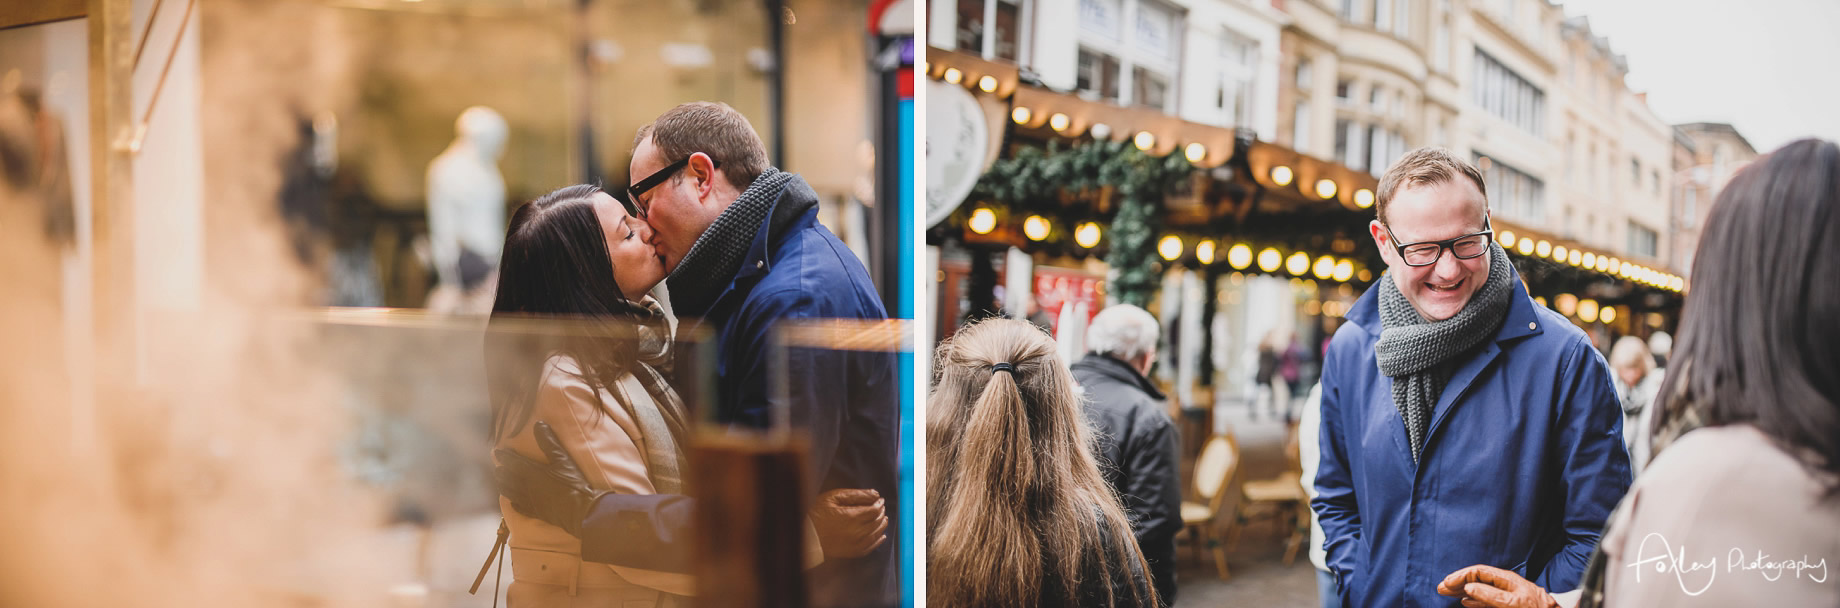 Angela and Andrew's Pre-Wedding Shoot at Manchester Christmas Markets 016